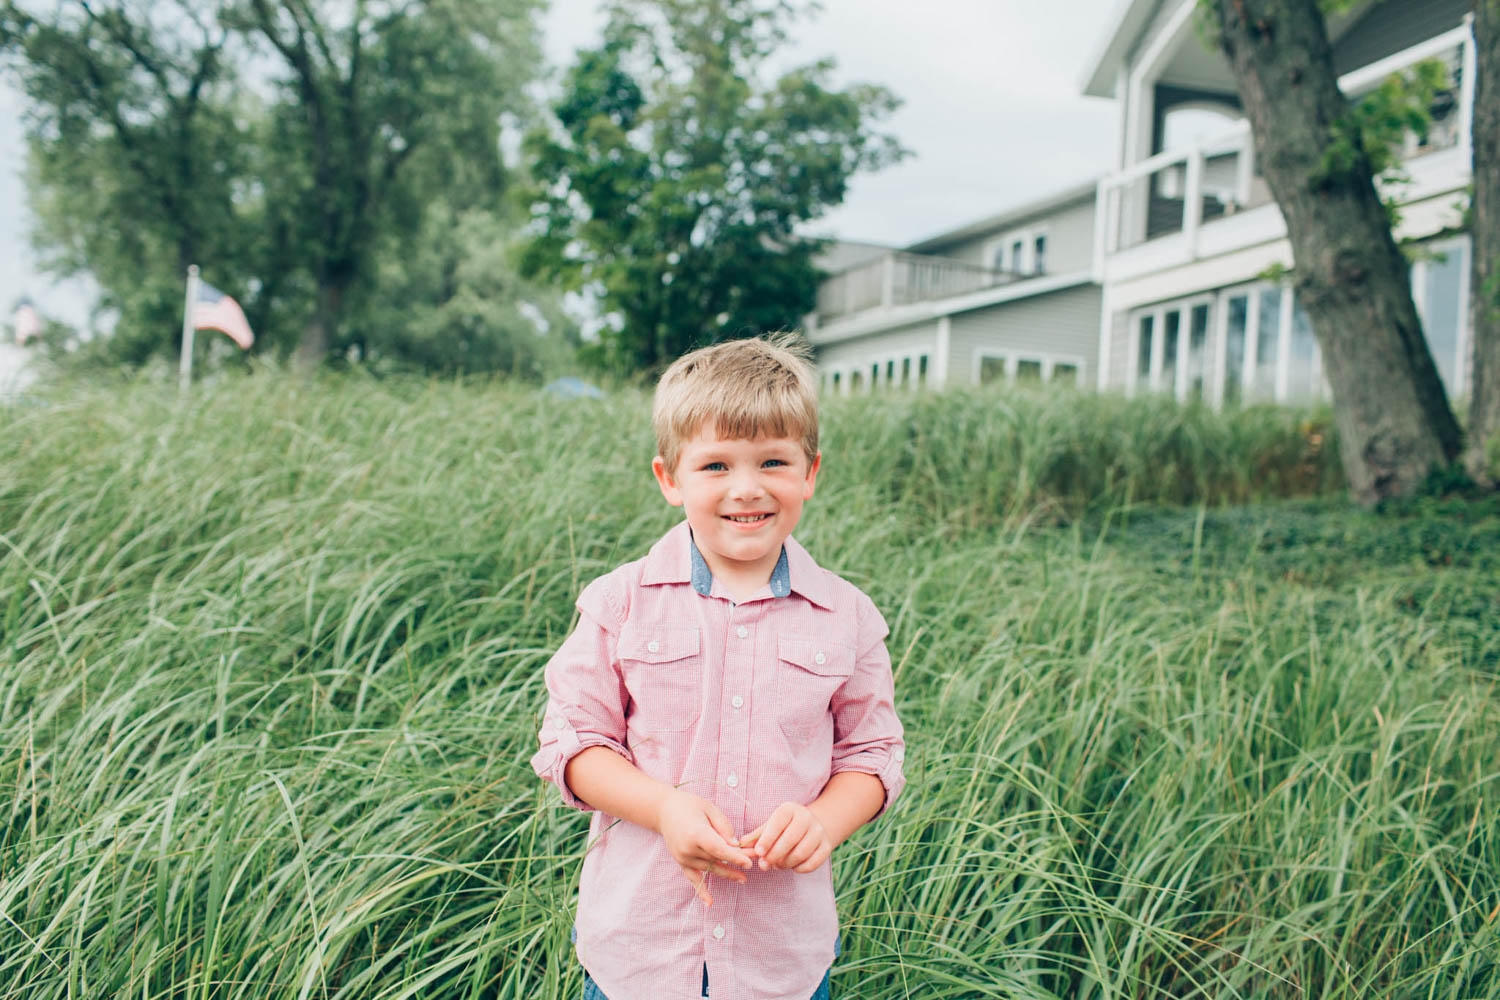 Jillian VanZytveld Photography - West Michigan Lifestyle Photography - 32.jpg